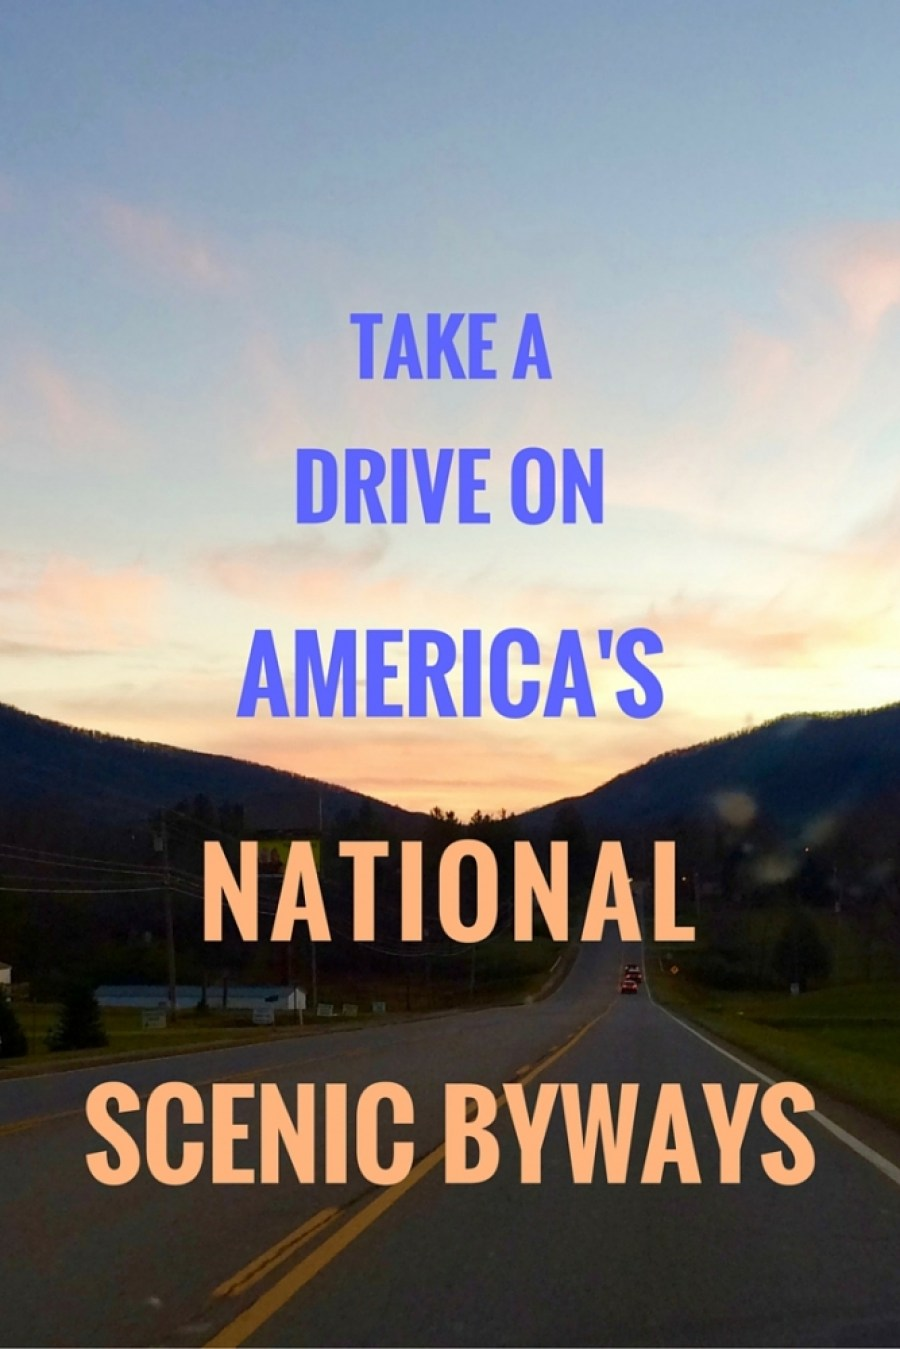 Take a Drive on Americas 6 - Take a Drive on America's National Scenic Byways